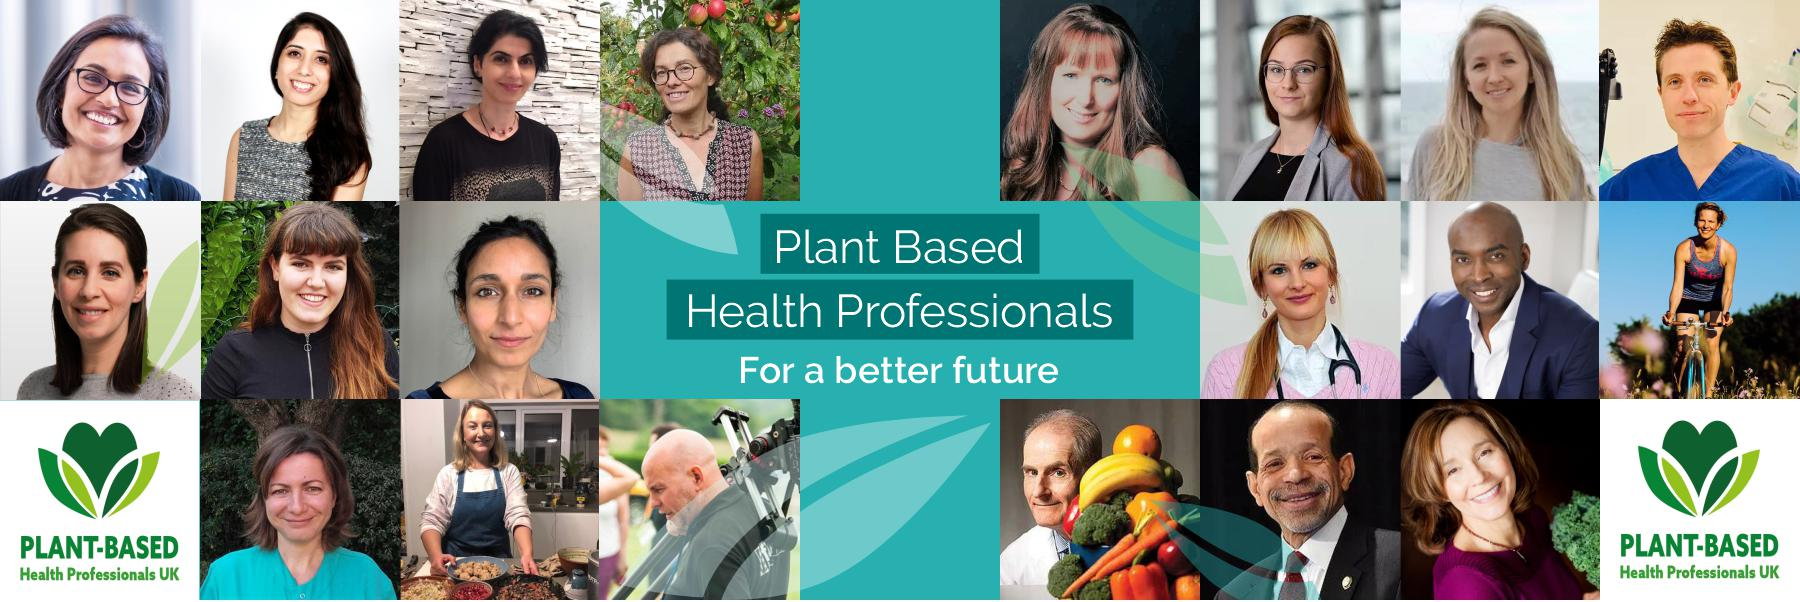 health benefits of plant-based diet supported by health professionals